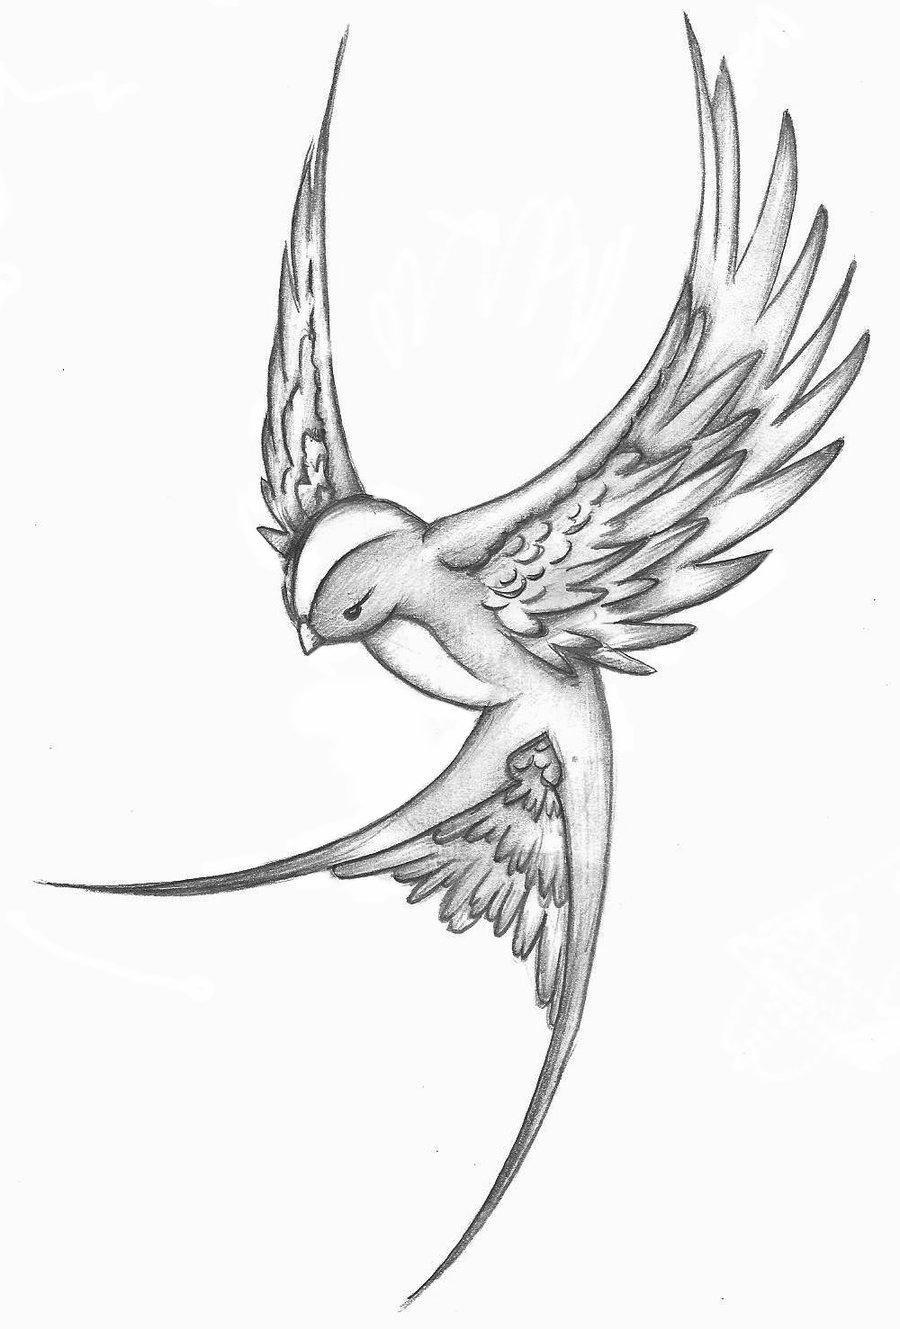 Drawn sparrow detailed Designs Wings Designs Tattoo foot